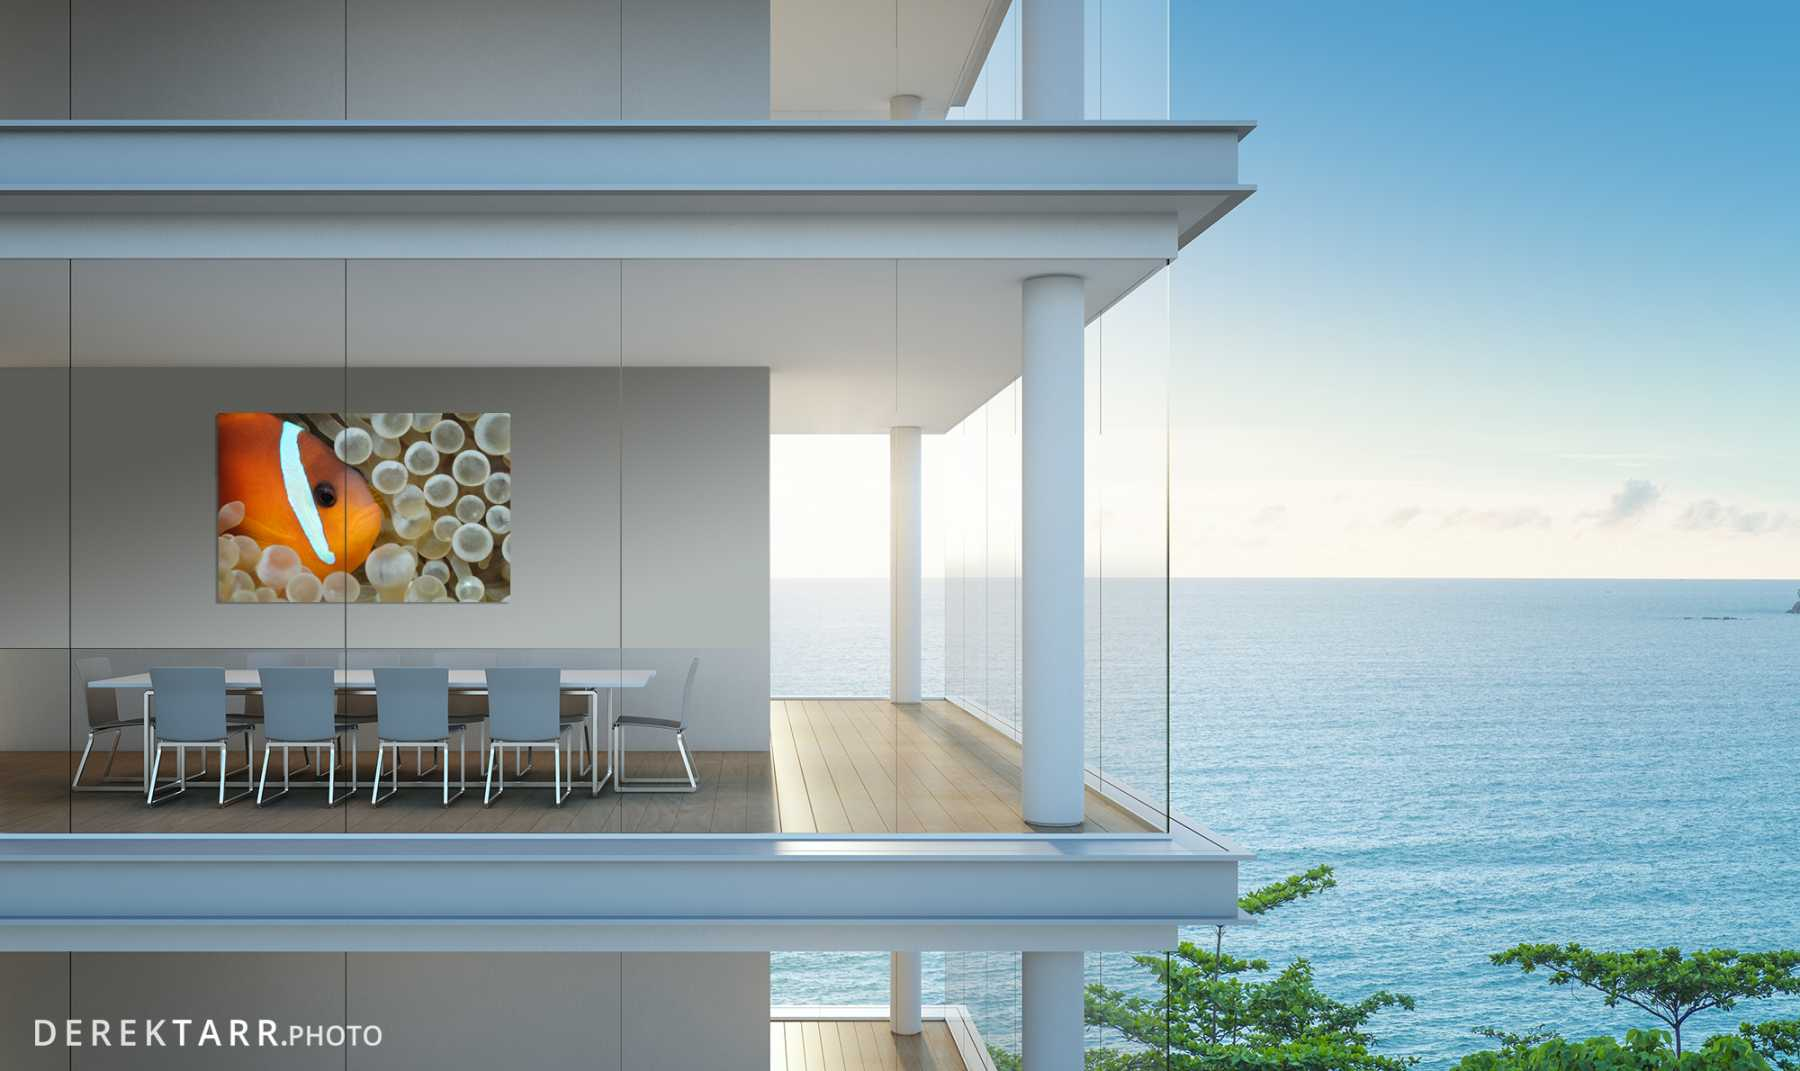 Modern ocean front home with Clownfish in Bubble-Tipped Anemone